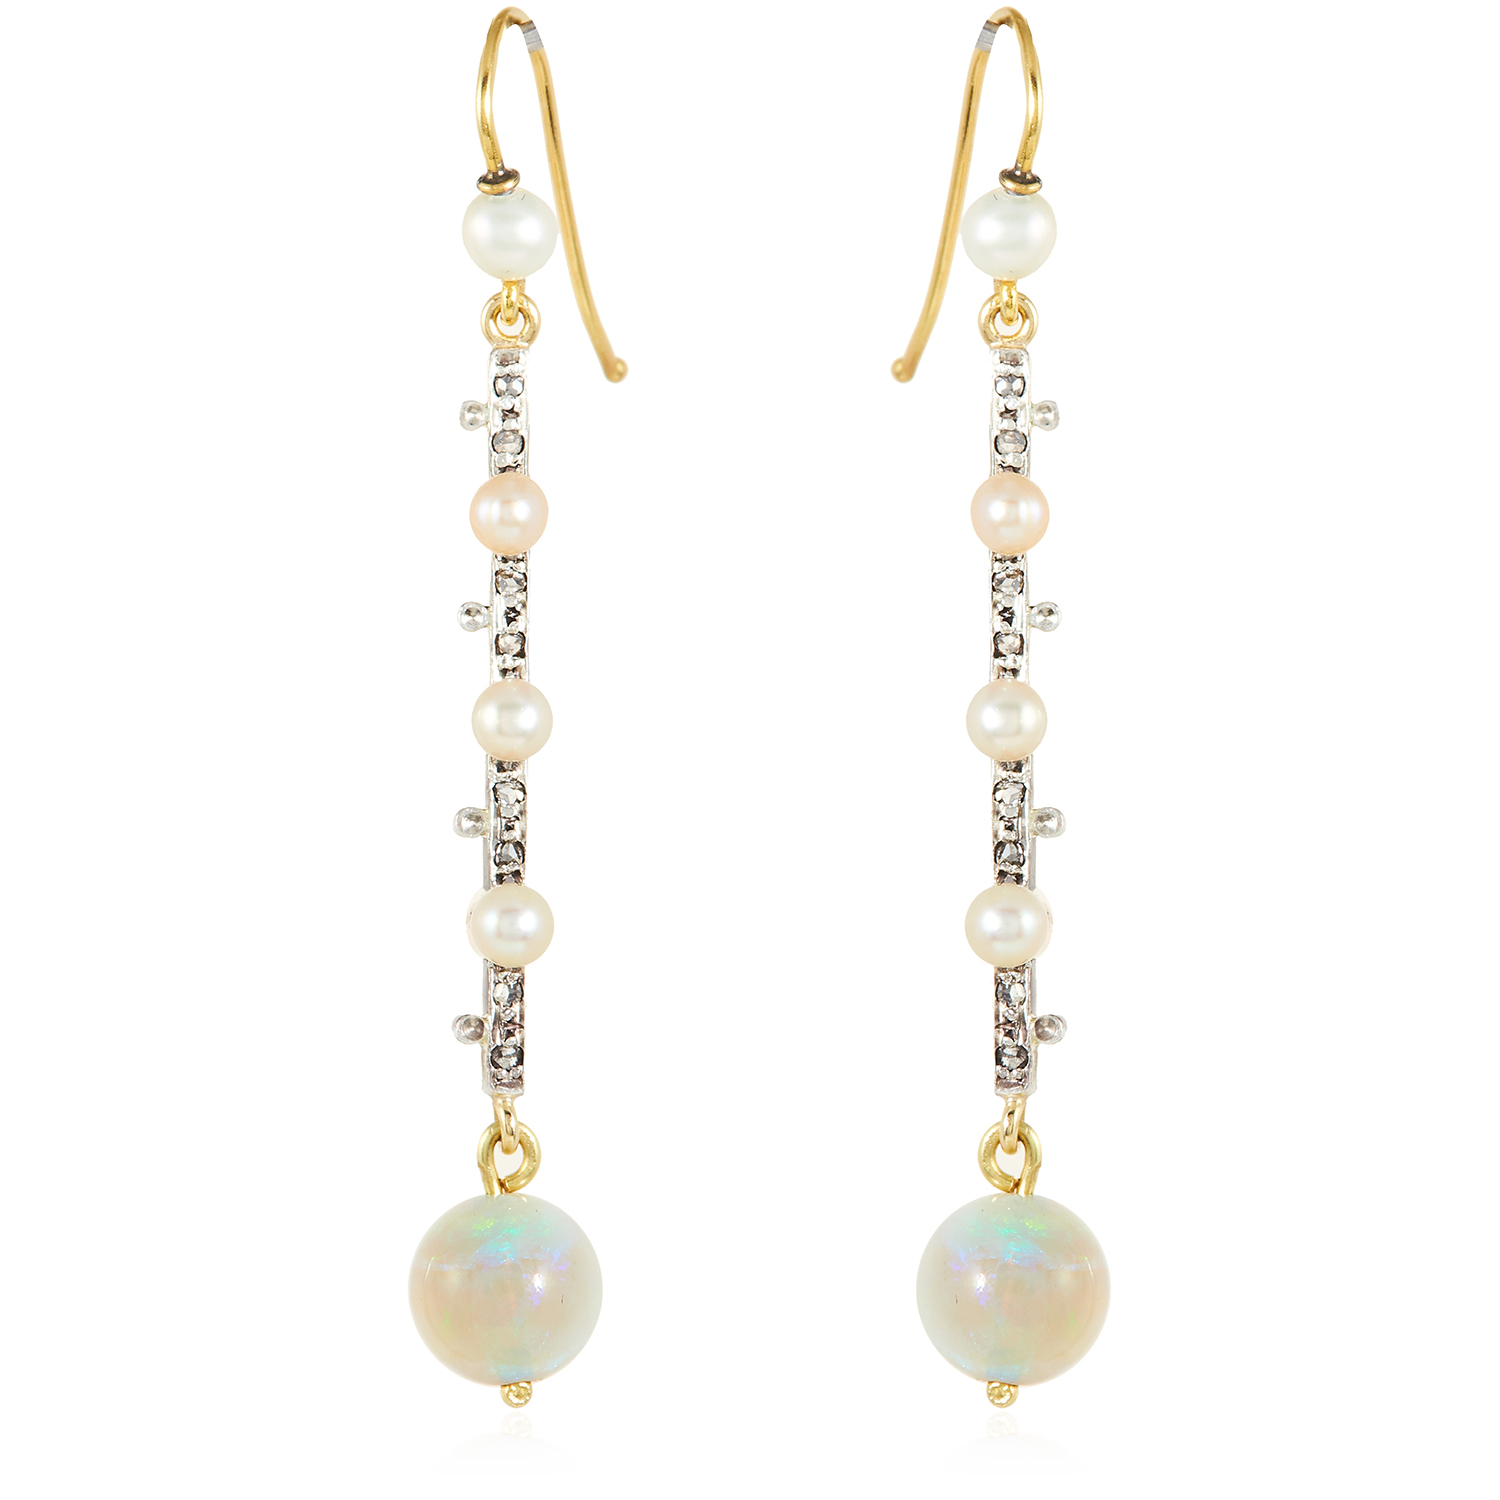 Los 36 - A PAIR OF ANTIQUE OPAL, PEARL AND DIAMOND EARRINGS in yellow gold and silver, each suspending a